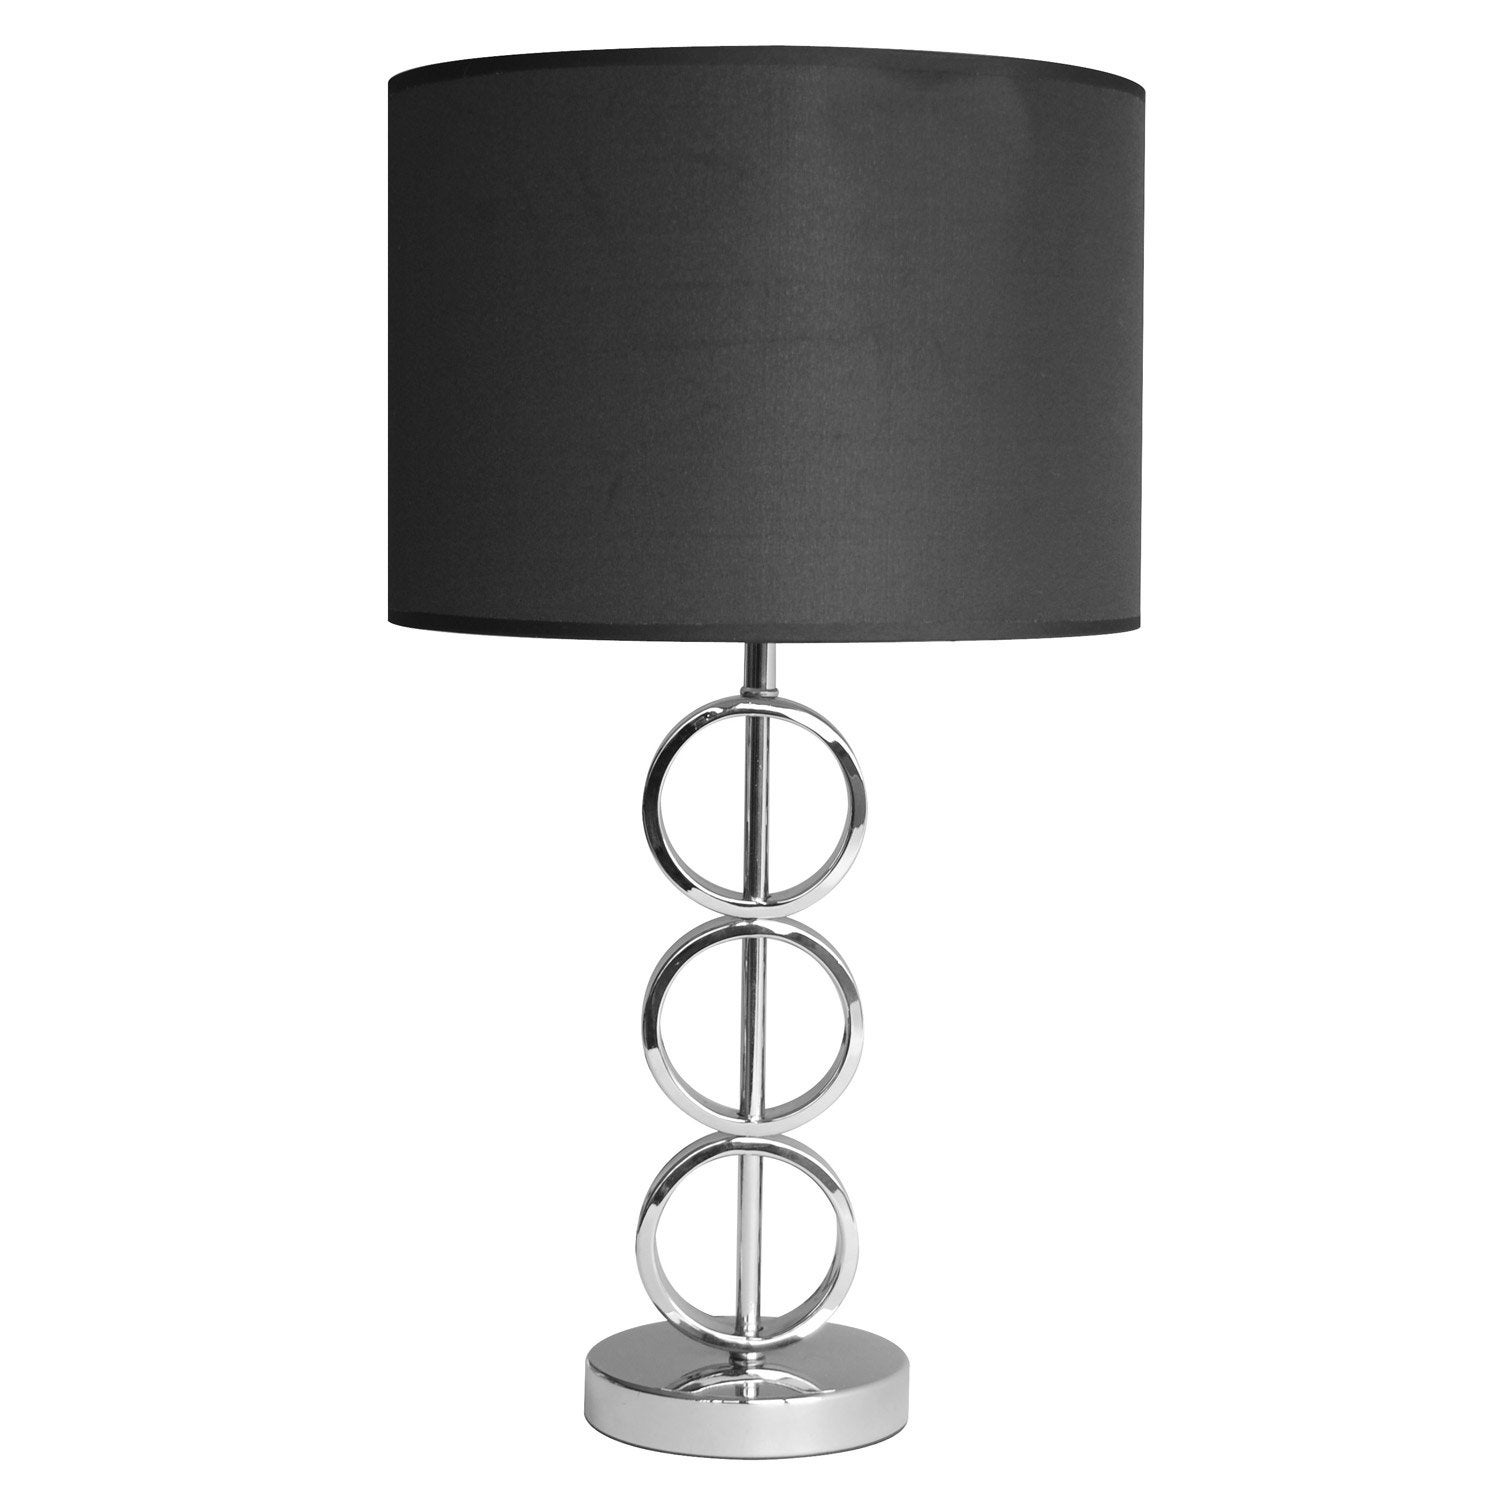 lampe helena seynave tissu noir 40 w leroy merlin. Black Bedroom Furniture Sets. Home Design Ideas